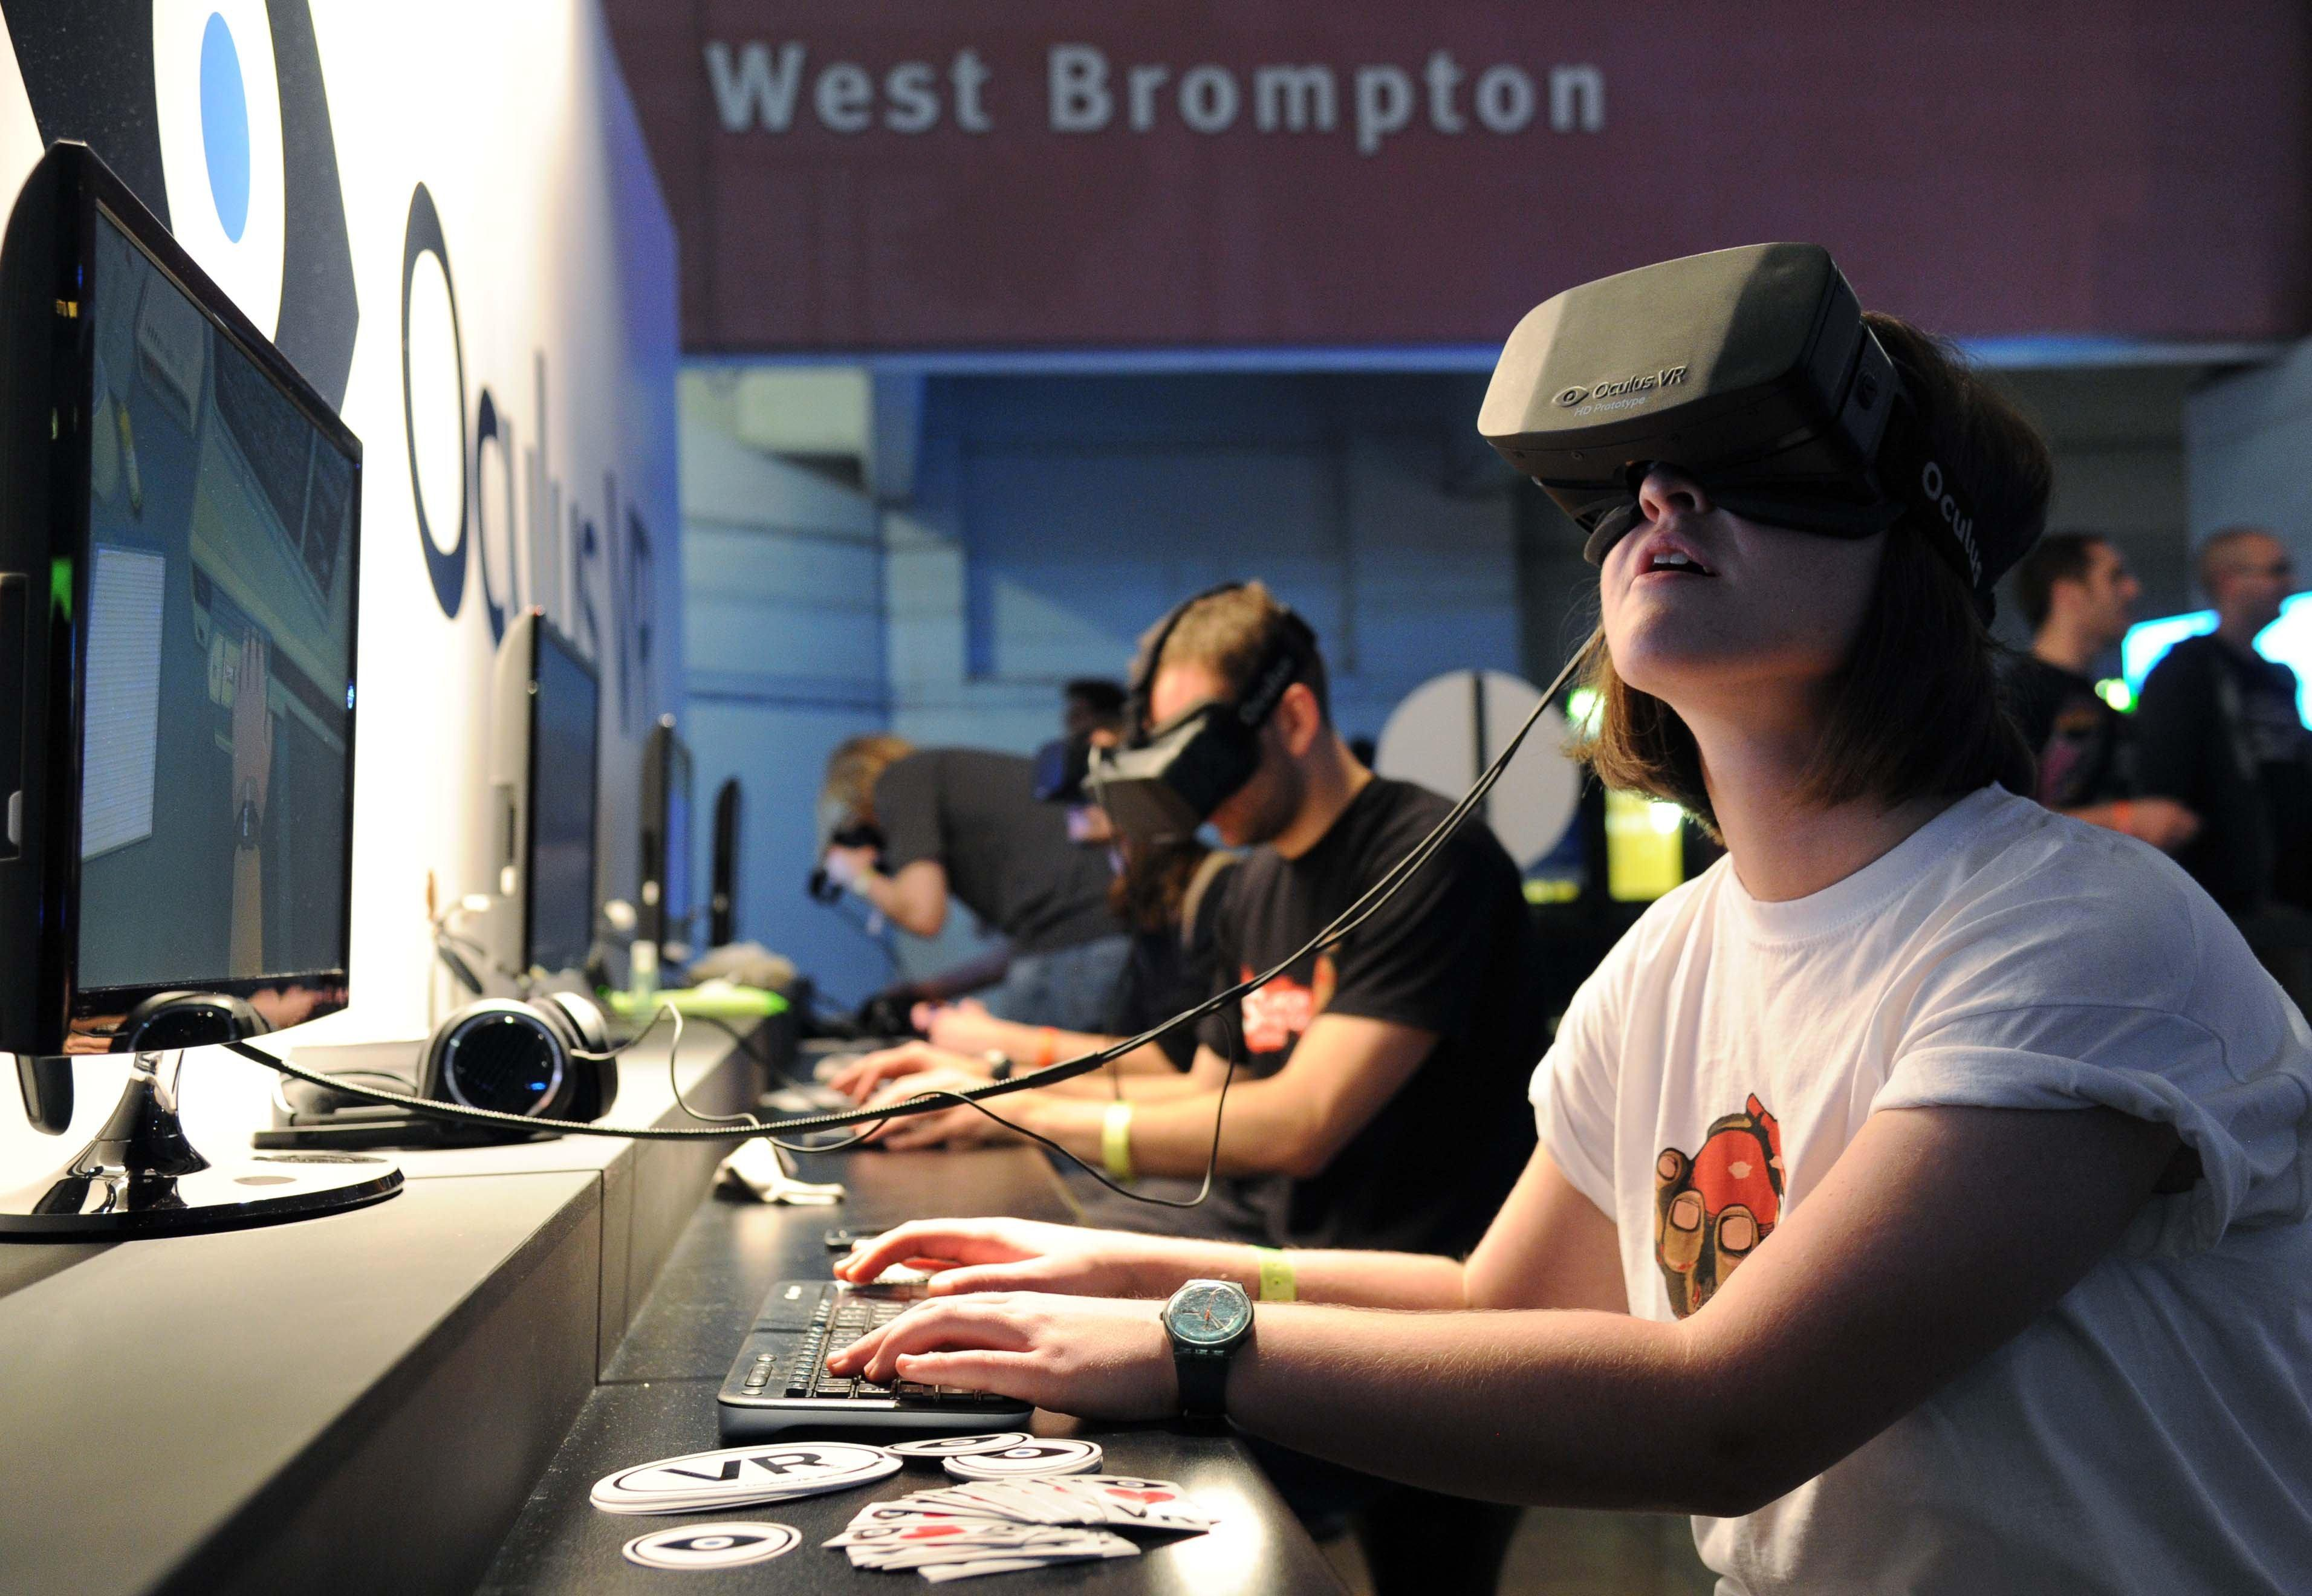 Image: Gamer using Oculus Rift